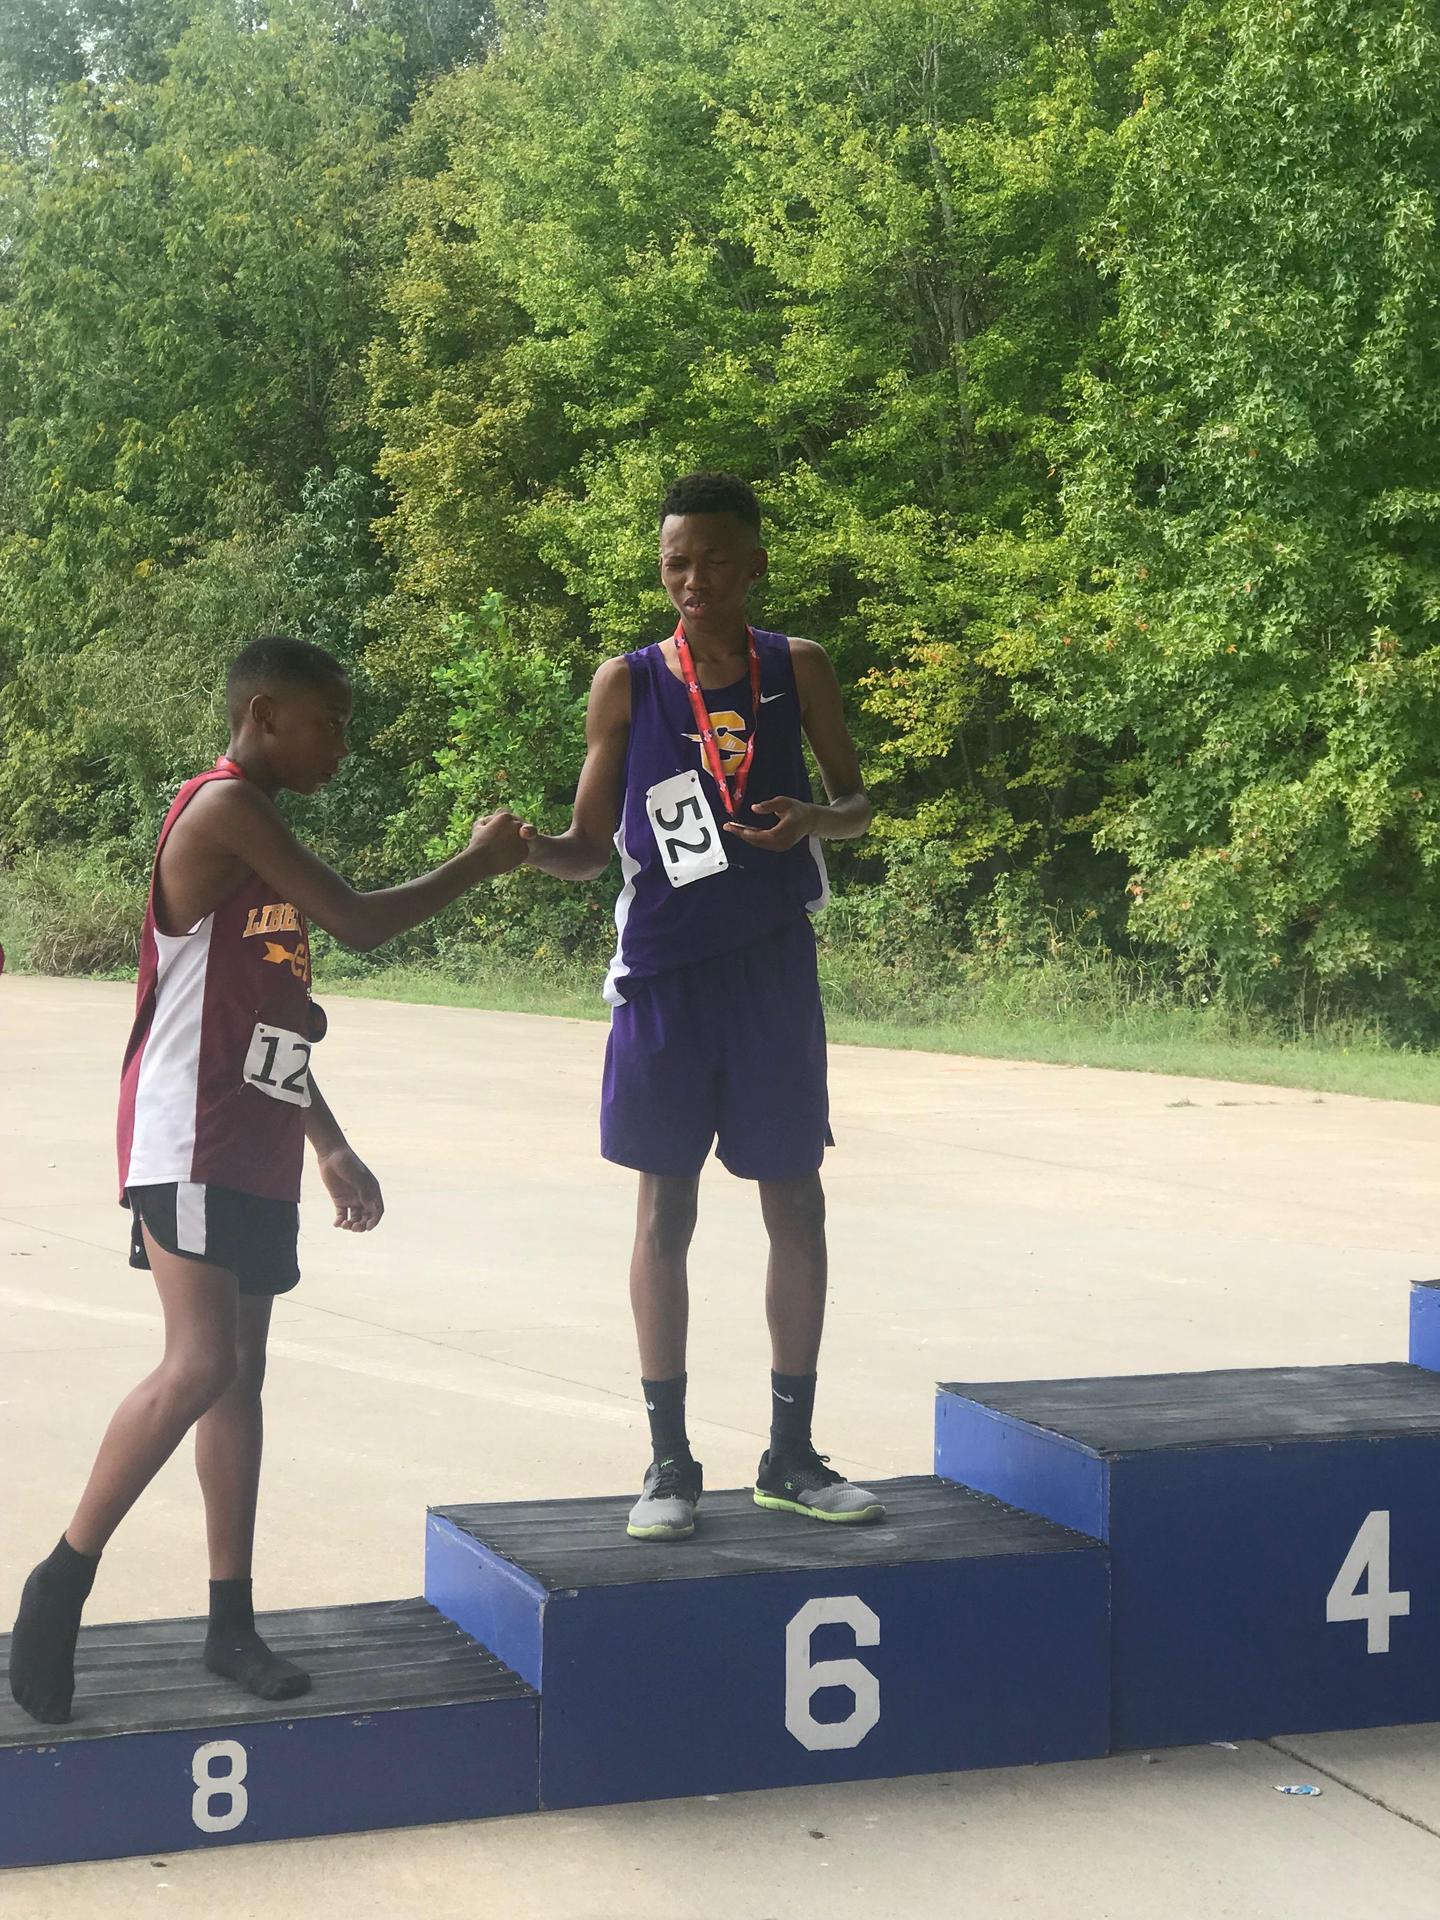 Cross Country's athlete S. Coleman showing great sportsmanship and congratulated another school player for placing in a competition.